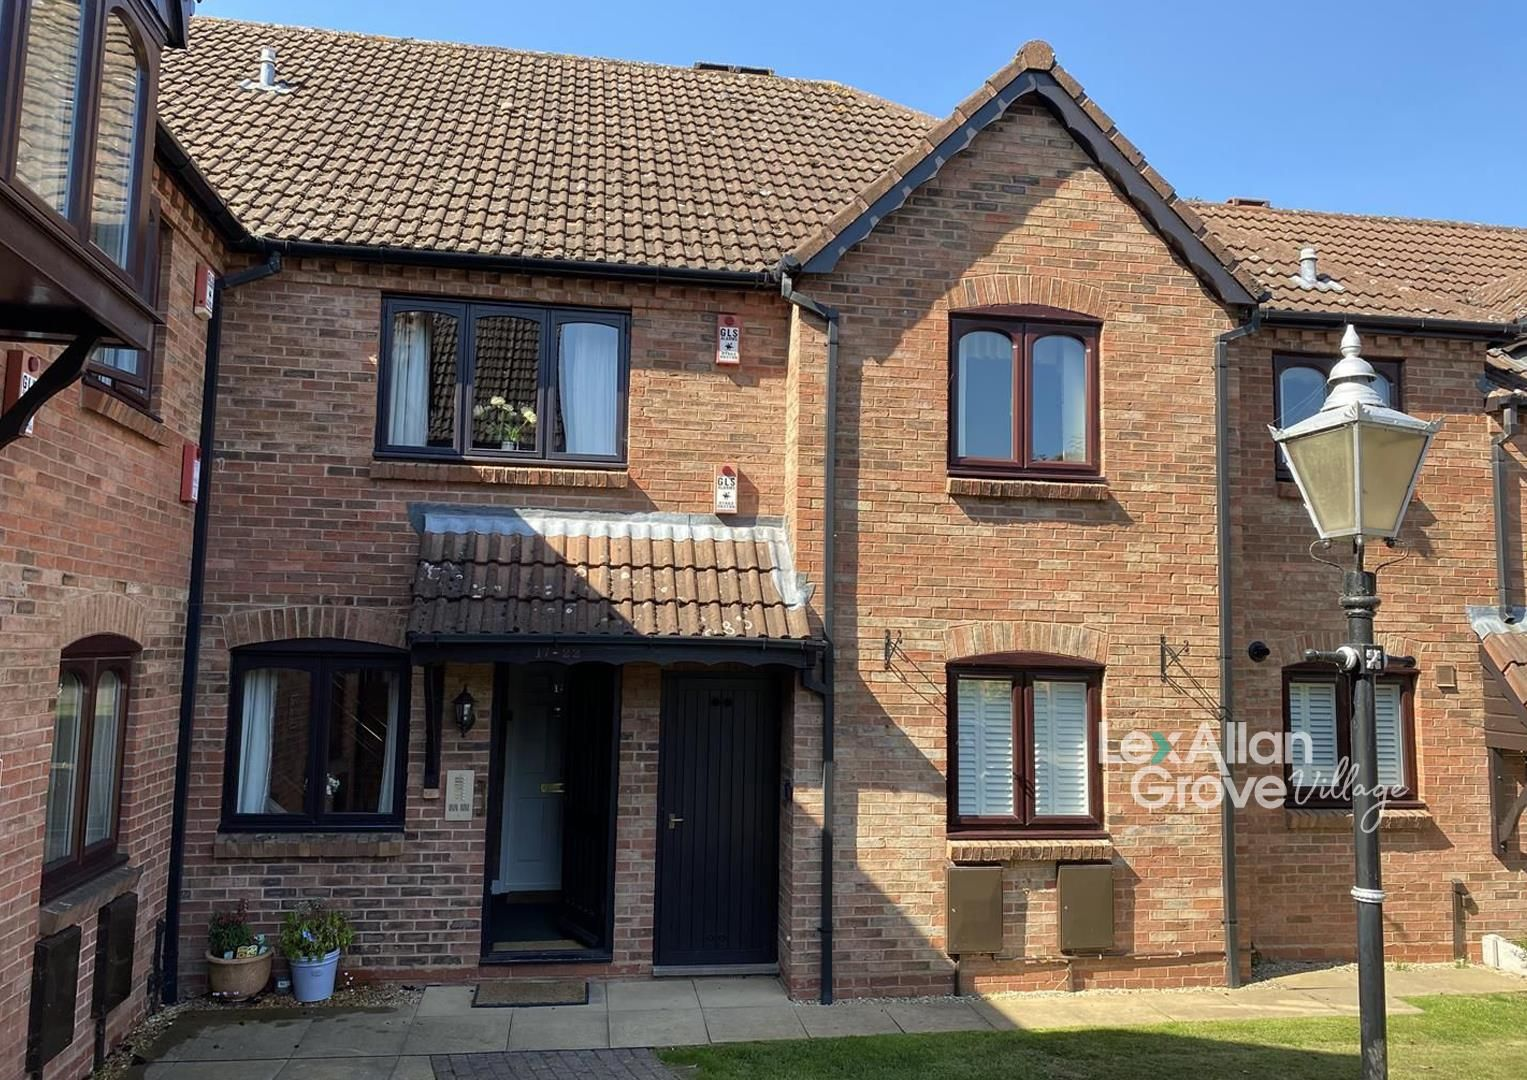 2 bed flat for sale in Belbroughton, DY9